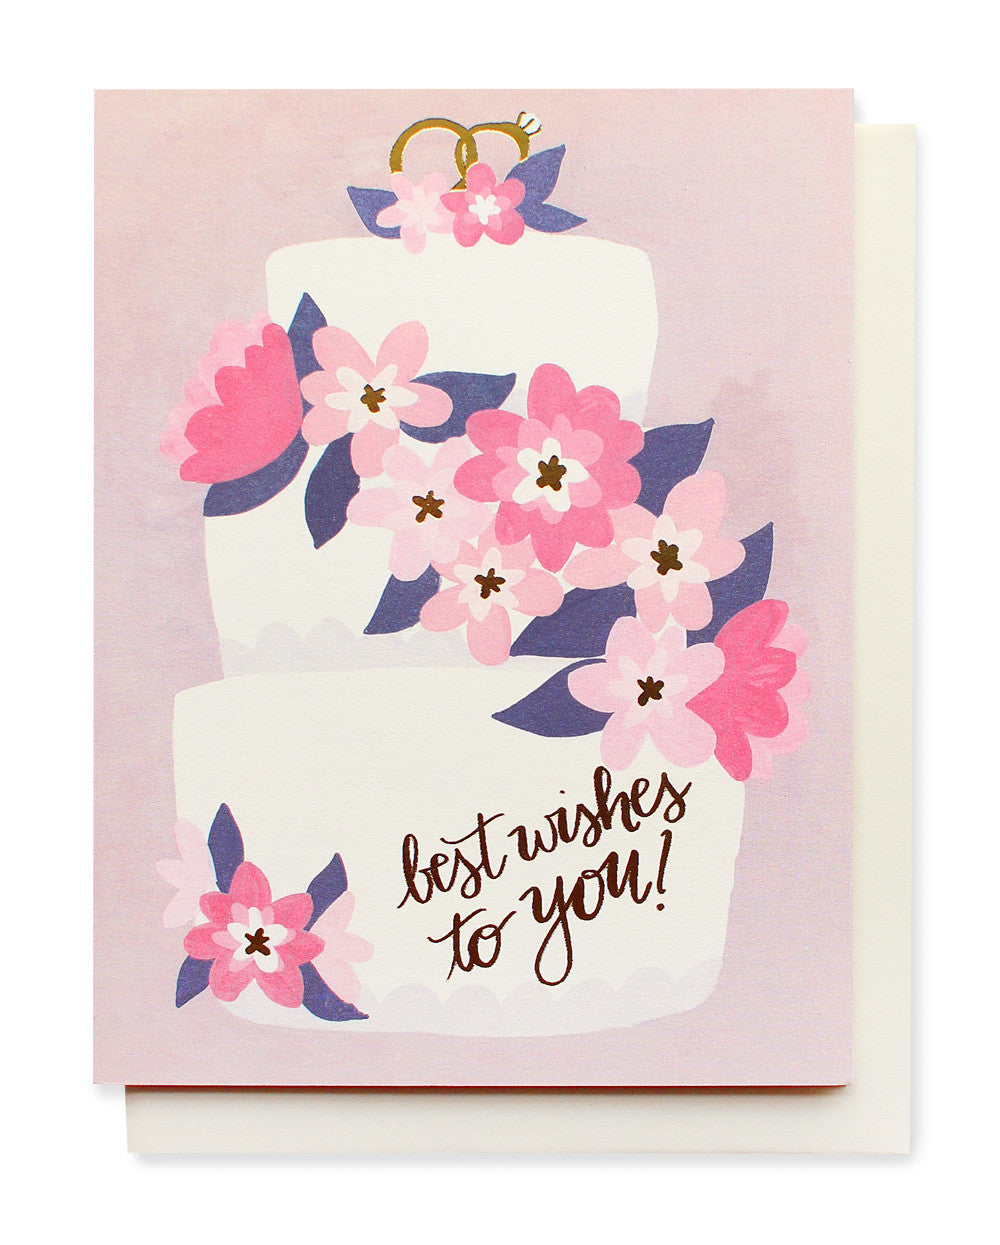 wedding cake card - www.mignonshop.com